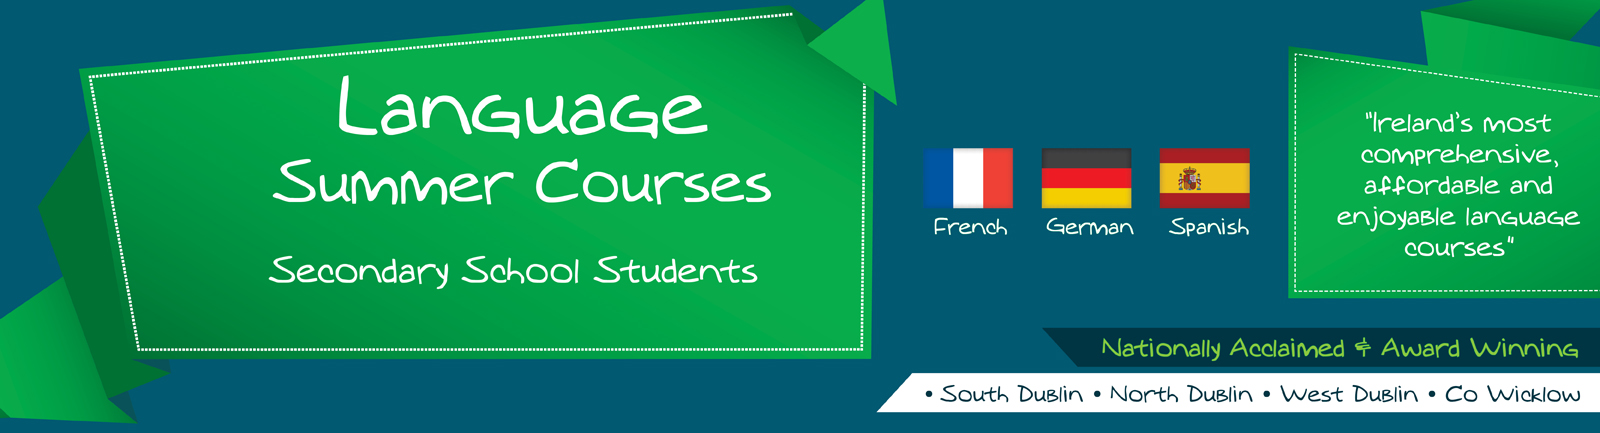 Our Courses - Language School Ireland